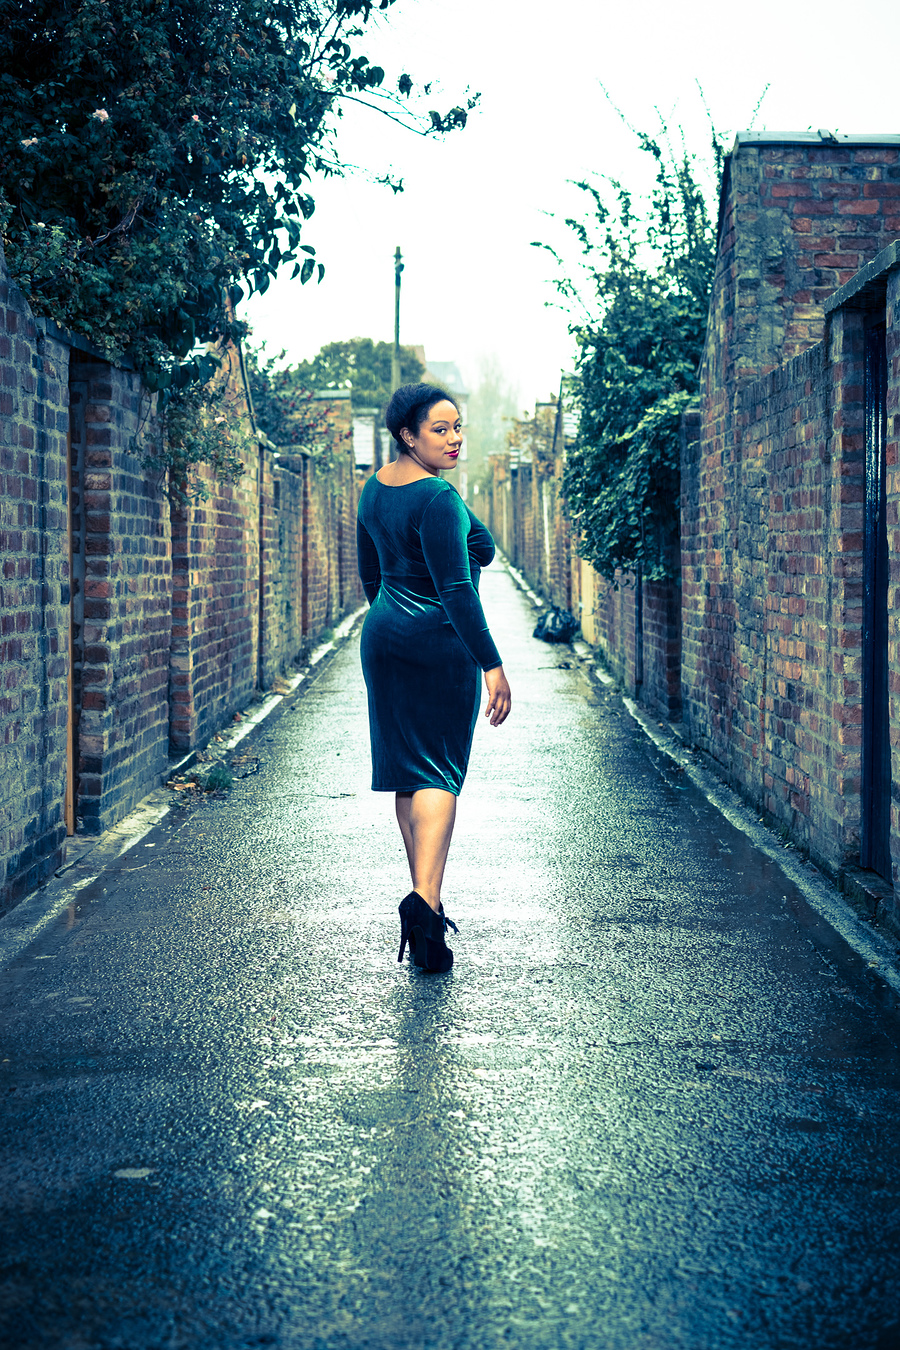 Alley / Photography by AndyPPhotography, Model Hannah La Rouge / Uploaded 26th October 2017 @ 01:29 PM